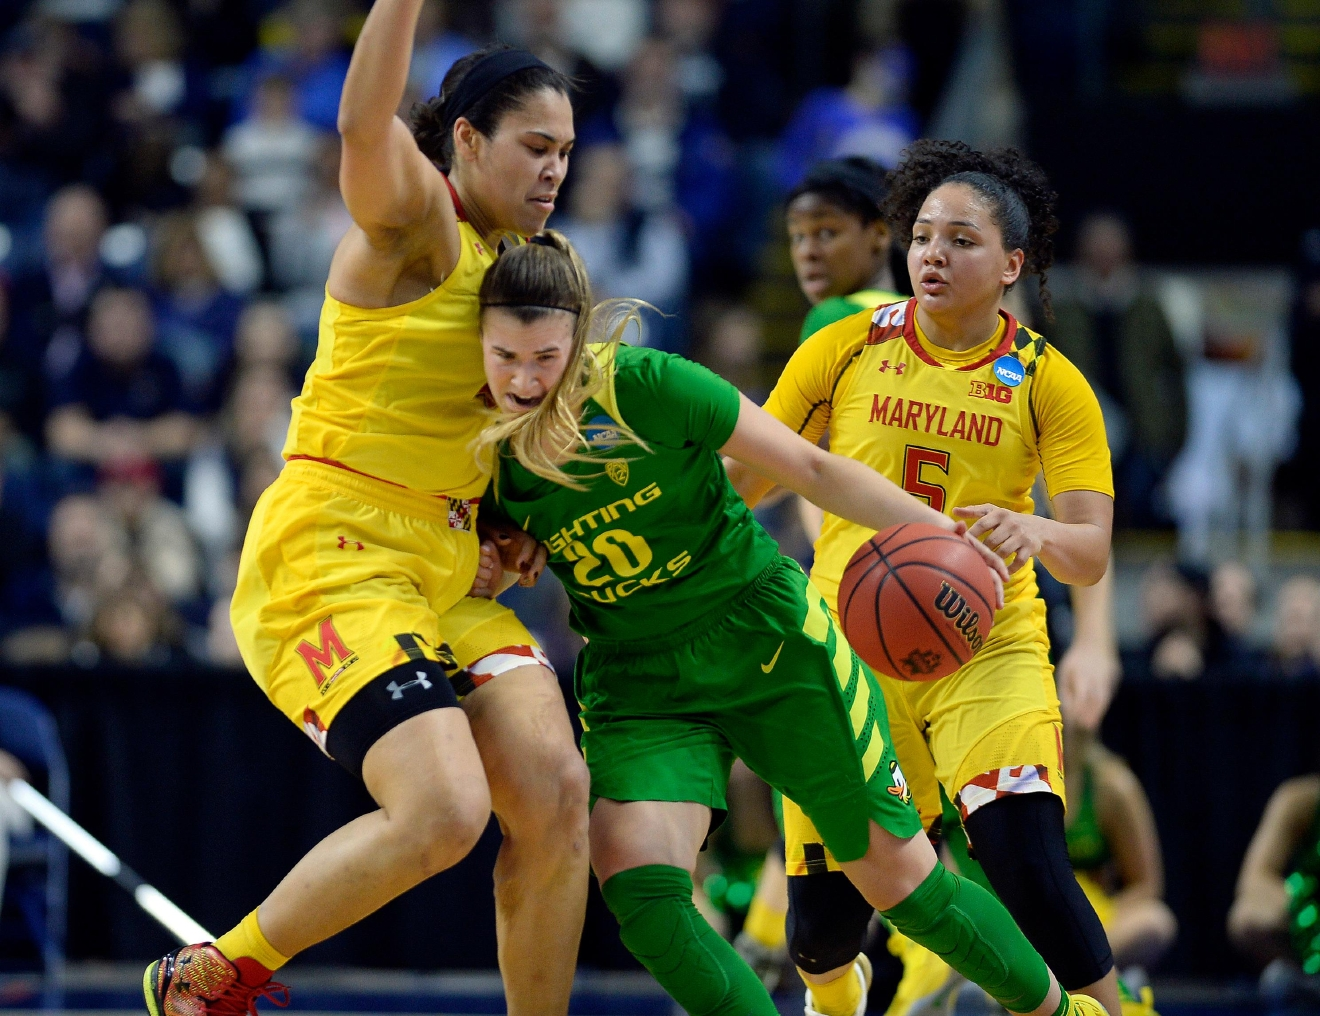 Oregon's Sabrina Ionescu, right, tries to drive against Maryland's Brionna Jones, left, during the second half of a regional semifinal game in the NCAA women's college basketball tournament, Saturday, March 25, 2017, in Bridgeport, Conn. (AP Photo/Jessica Hill)